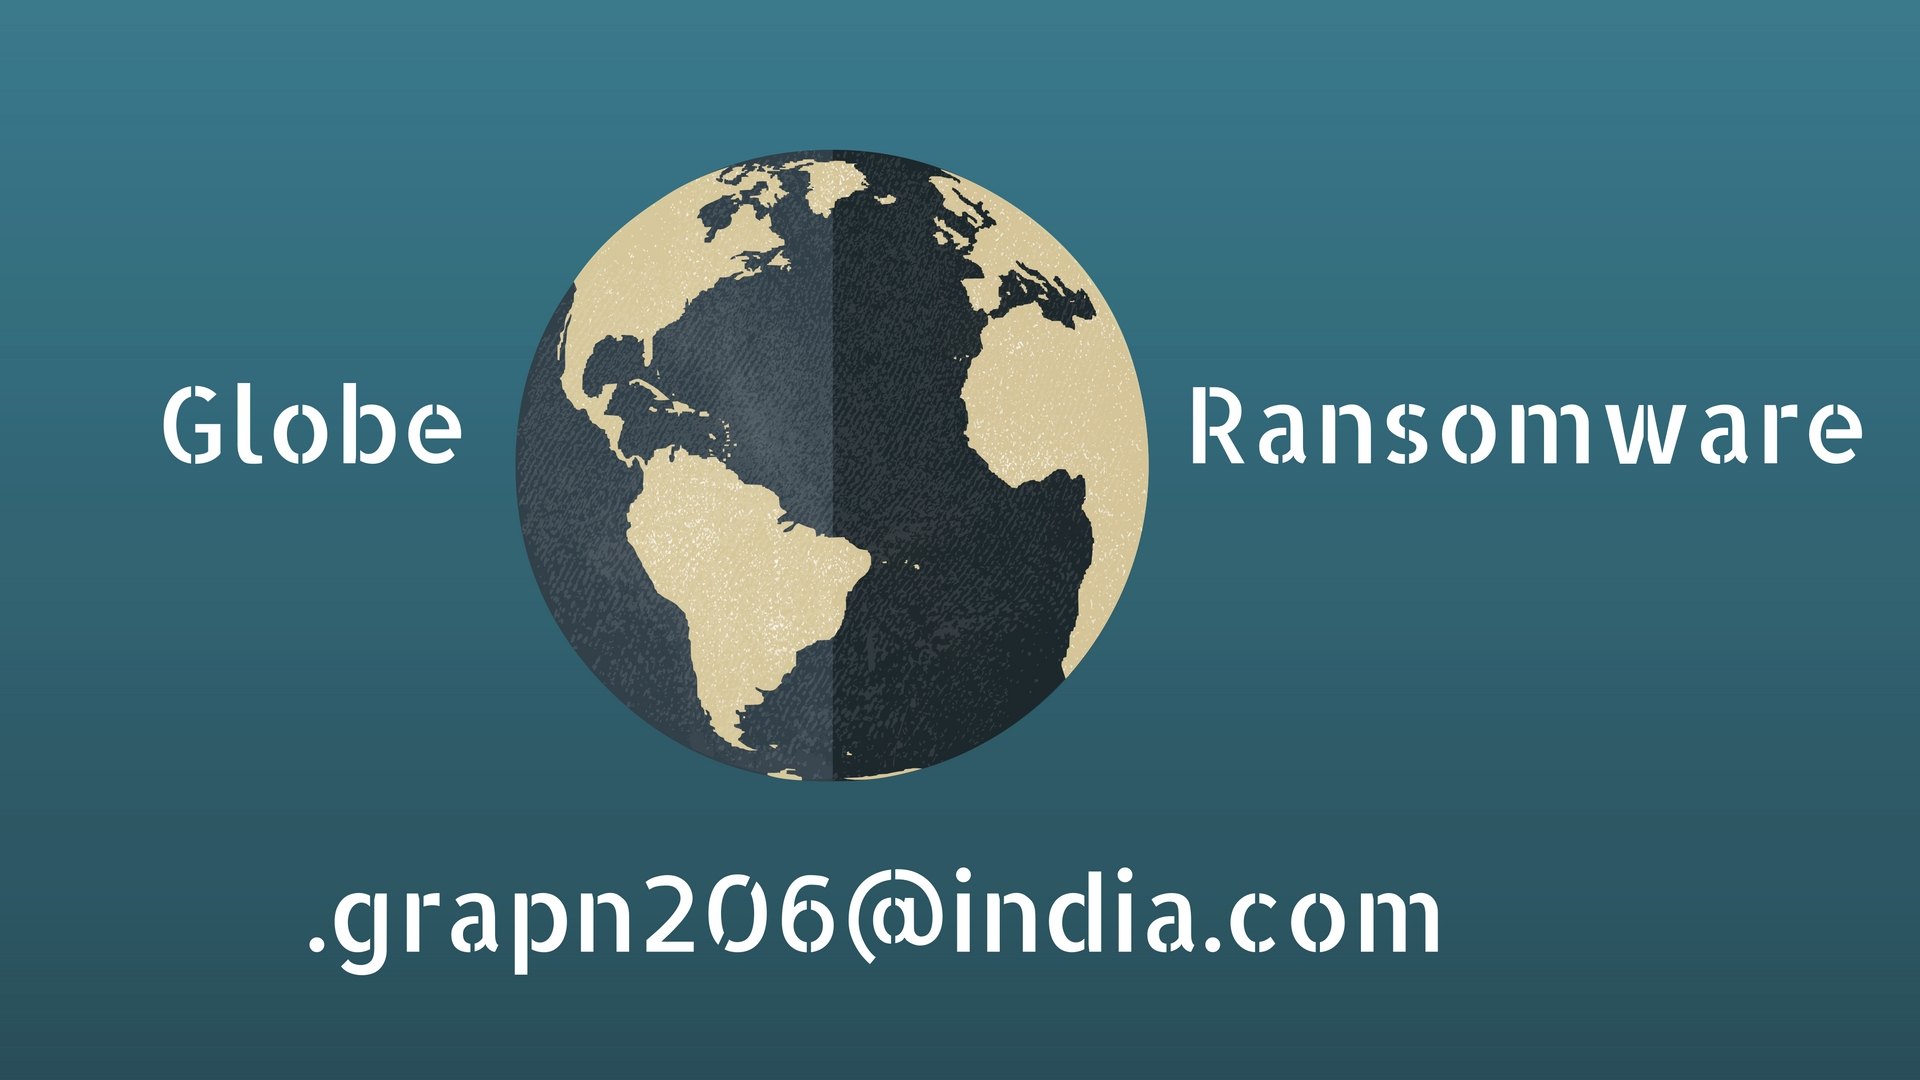 Globe-ransomware-.grapn206@india.com-bestsecuritysearch